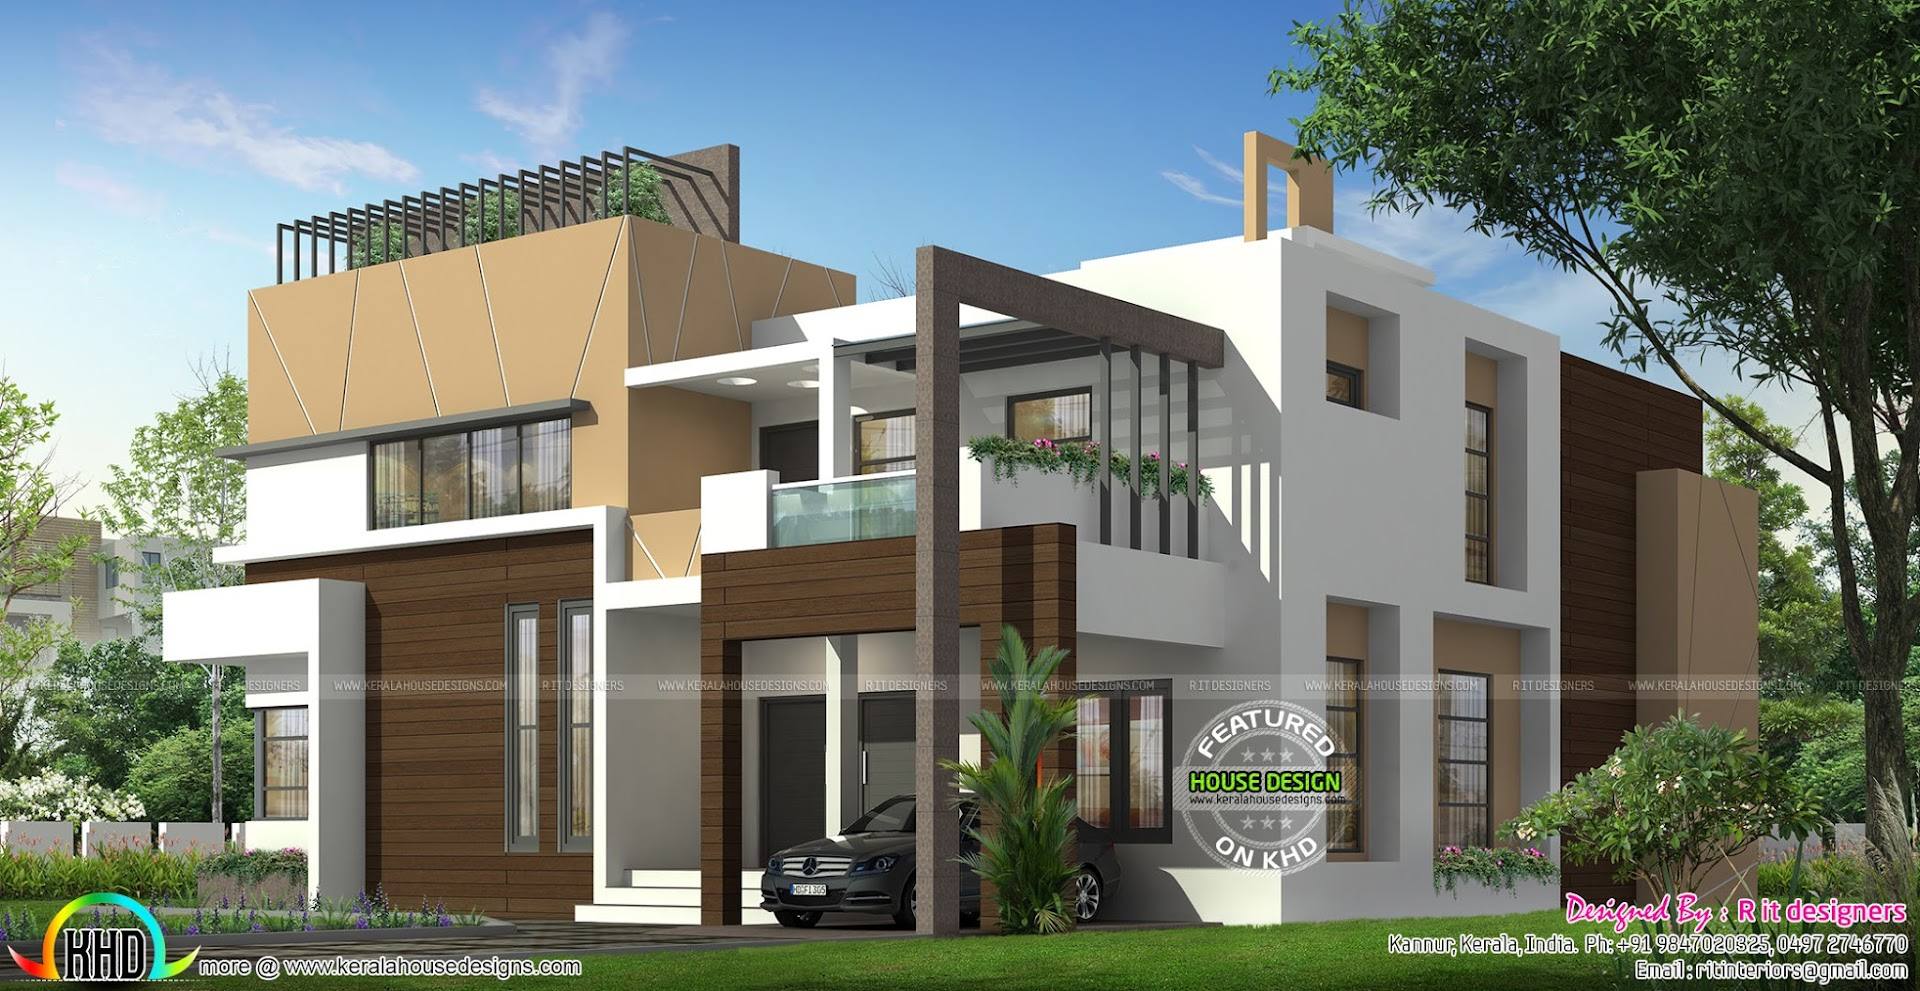 Luxurious 5 bedroom ultra modern home kerala home design for Ultra modern house plans